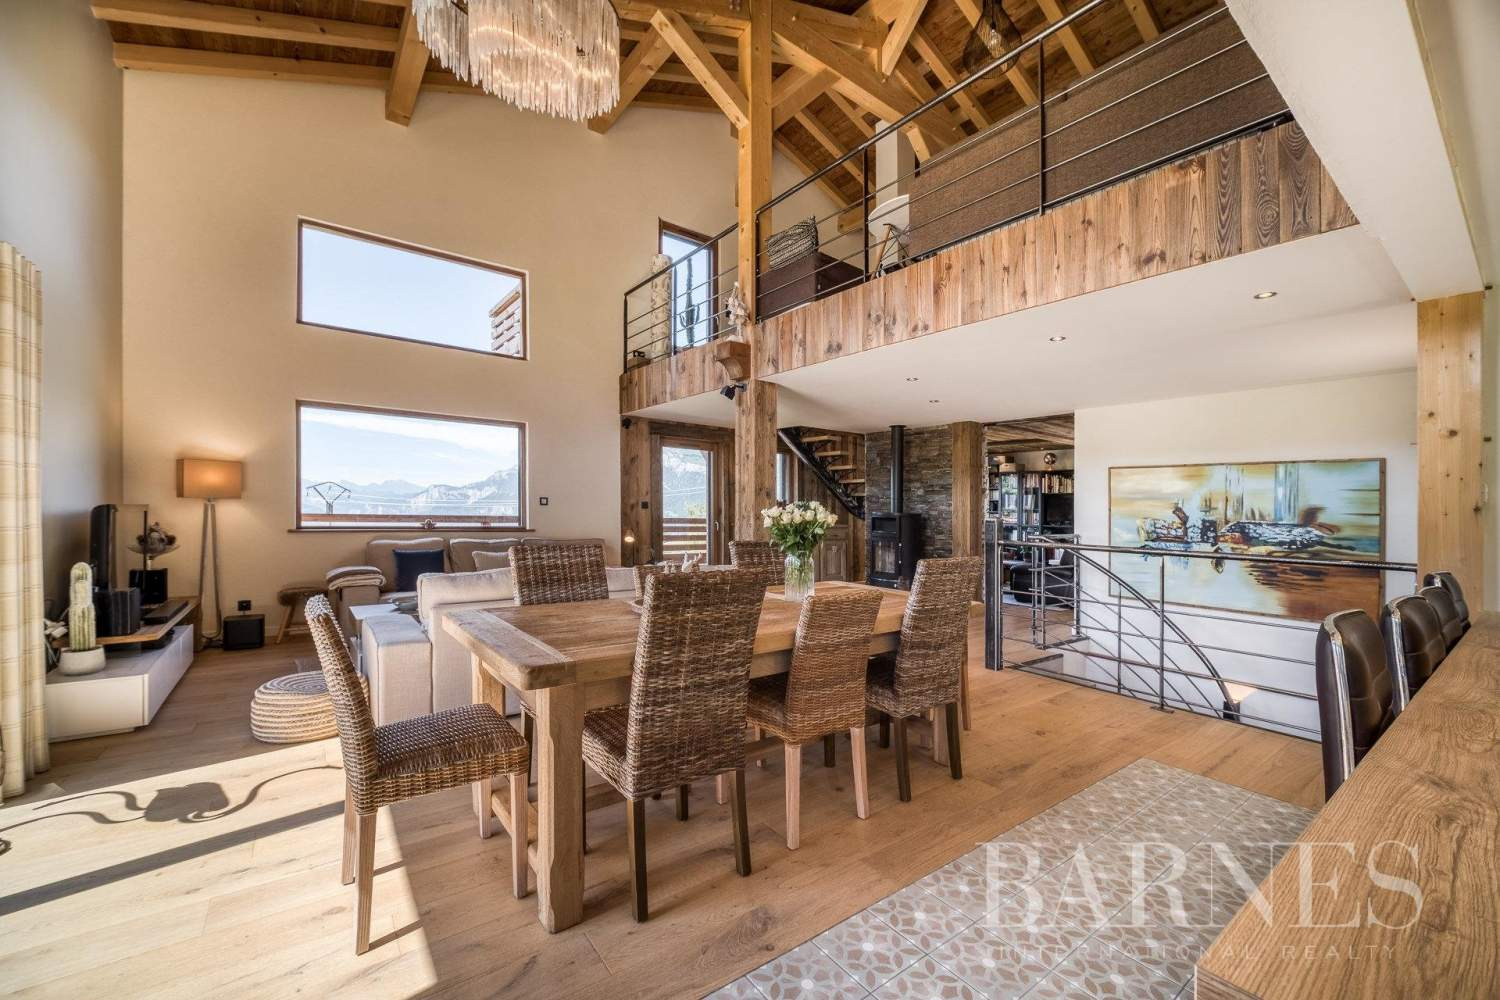 Exclusive to Barnes - Stunning ski-in chalet situated on La Princesse ski slopes picture 2